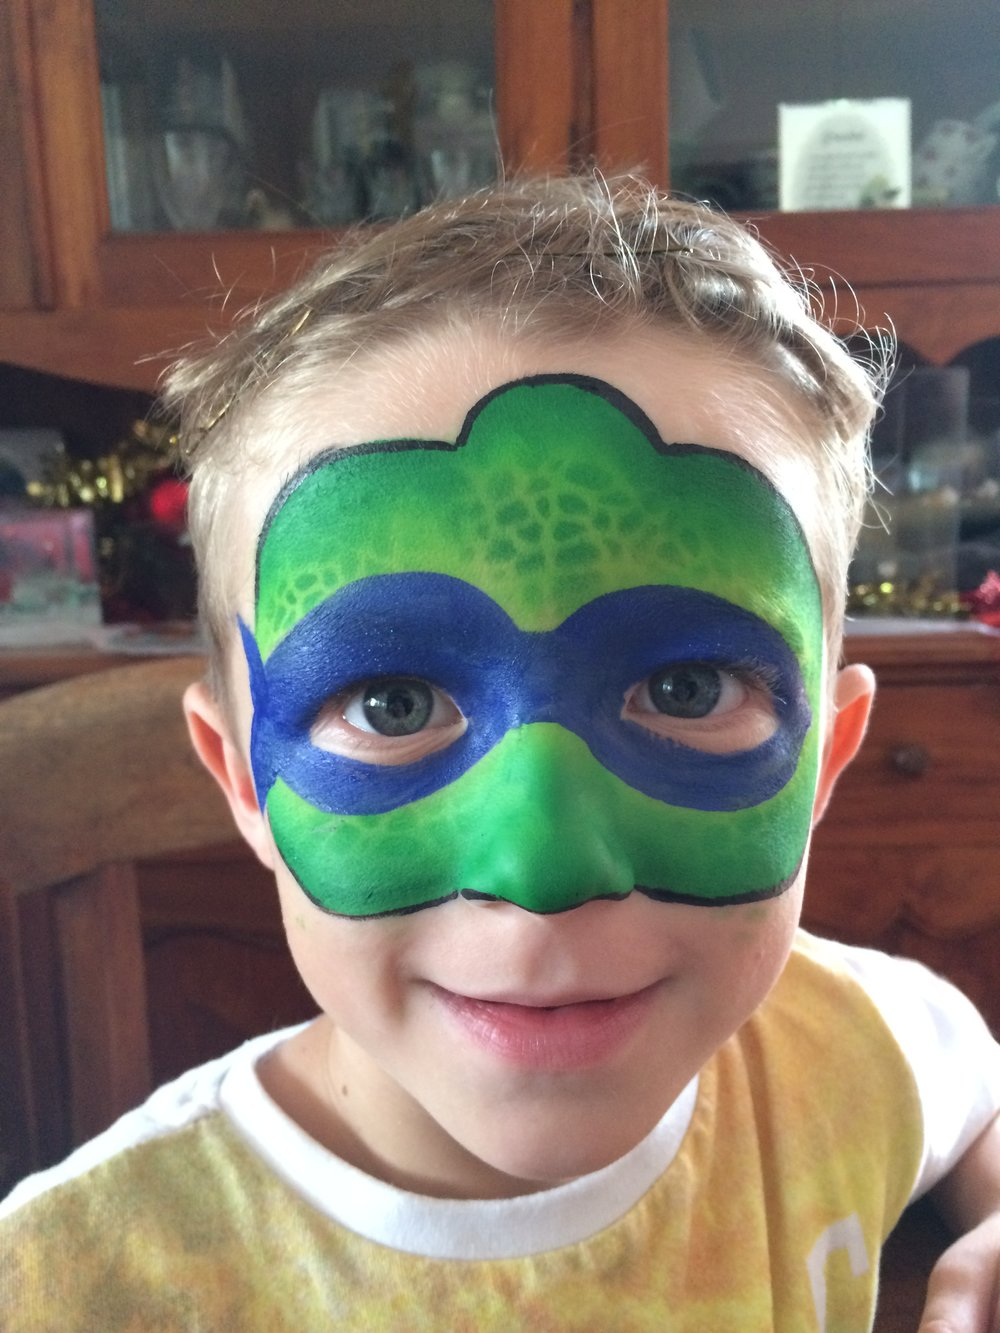 Ninja Turtles Face Paint.jpg